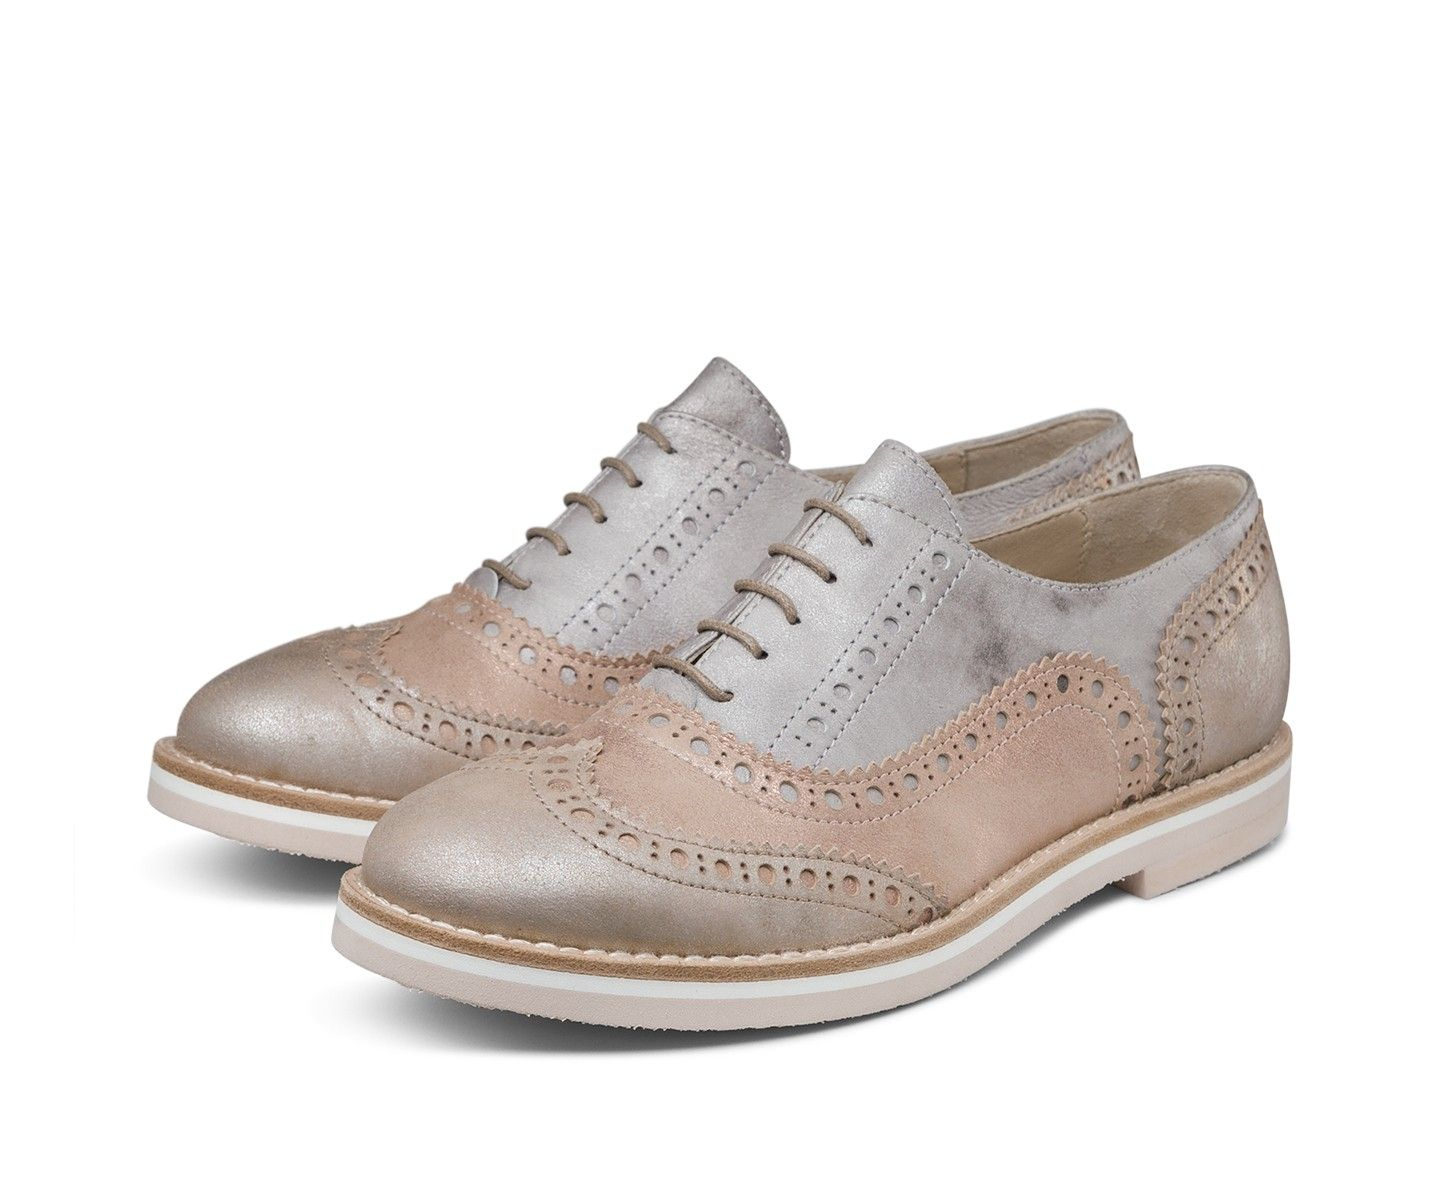 Leather lace-ups with a metallic finish and an ultra-light micro rubber sole in multi-coloured layers to express all of AGL's know-how: painstaking design and traditional Italian shoemaking techniques for a refined, minimalist shoe enriched with dovetailed openwork of clearly British inspiration at the toe.